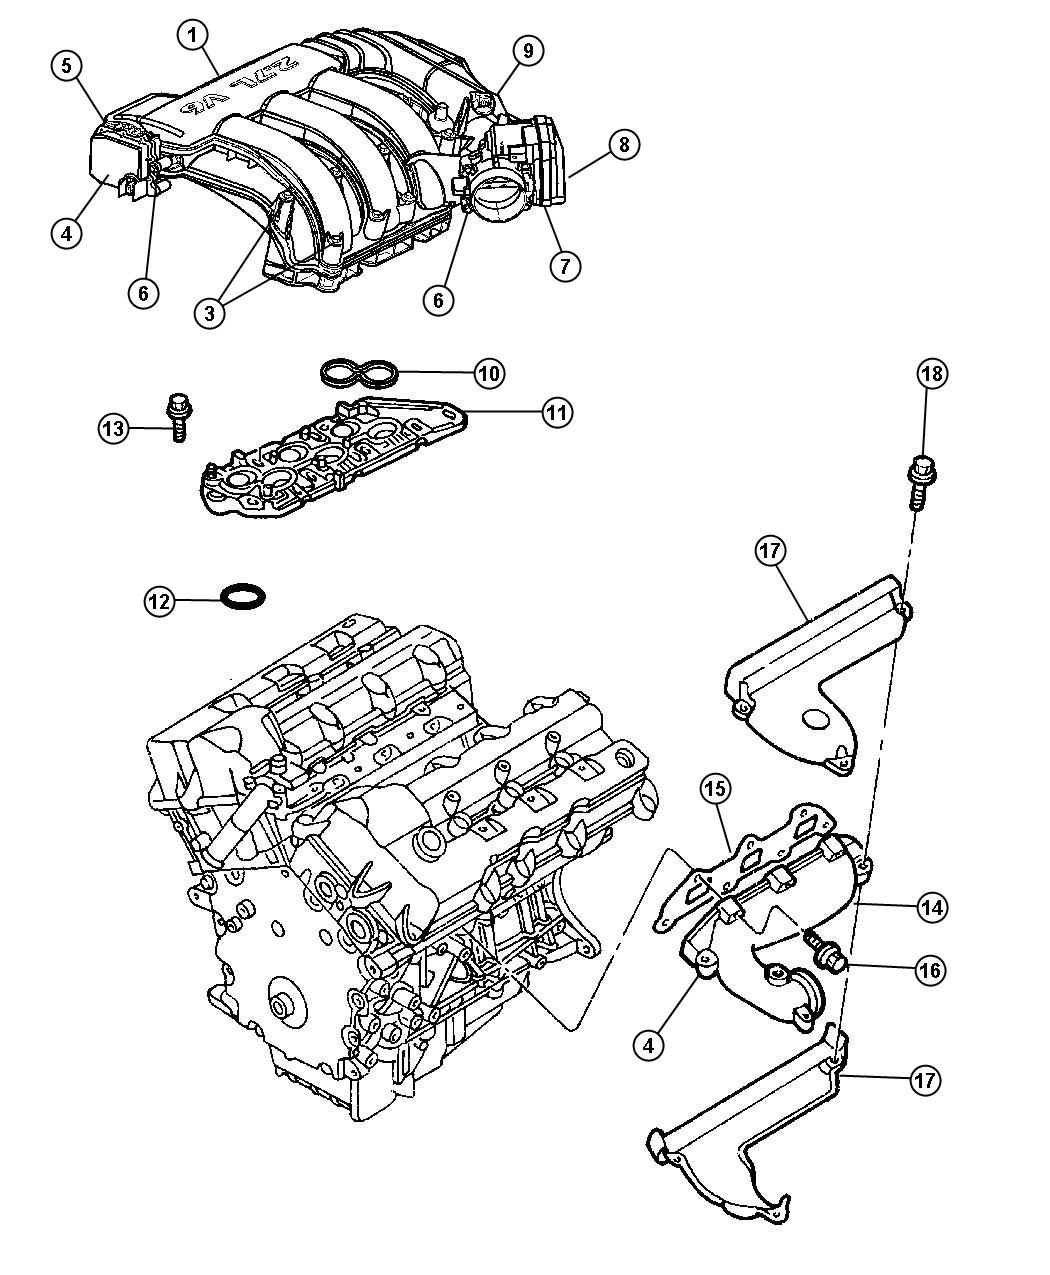 hight resolution of chrysler 2 7 engine diagram wiring diagram detailed 1999 dodge intrepid engine diagram chrysler 2 7 engine diagram